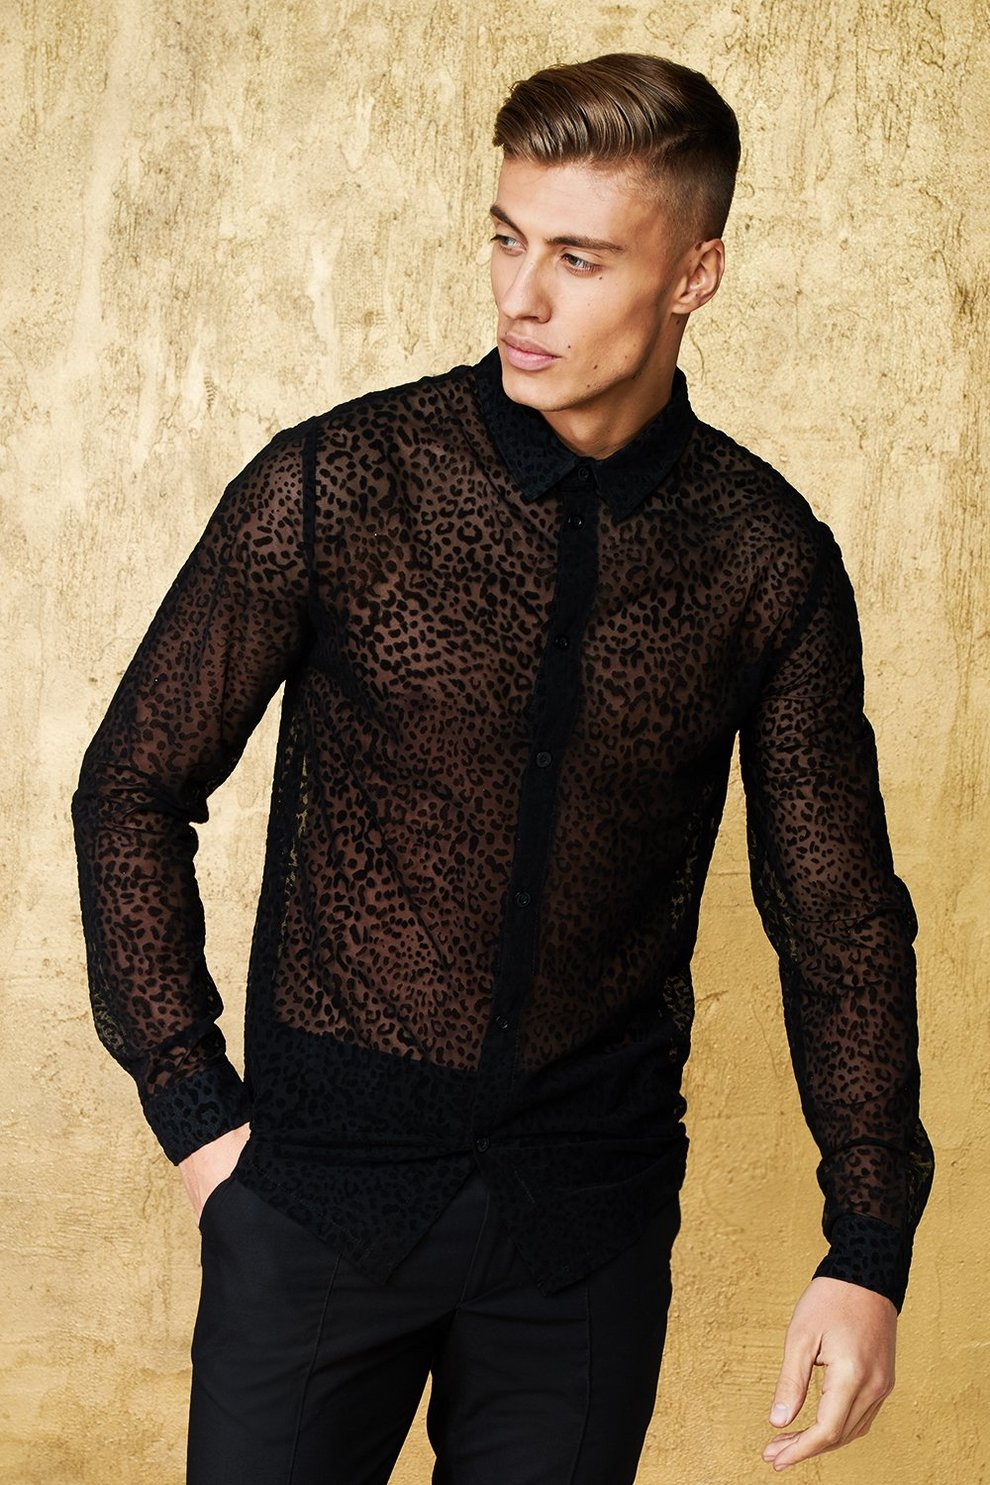 f2d1a7a4158d Mens Black Leopard Mesh Long Sleeve Shirt